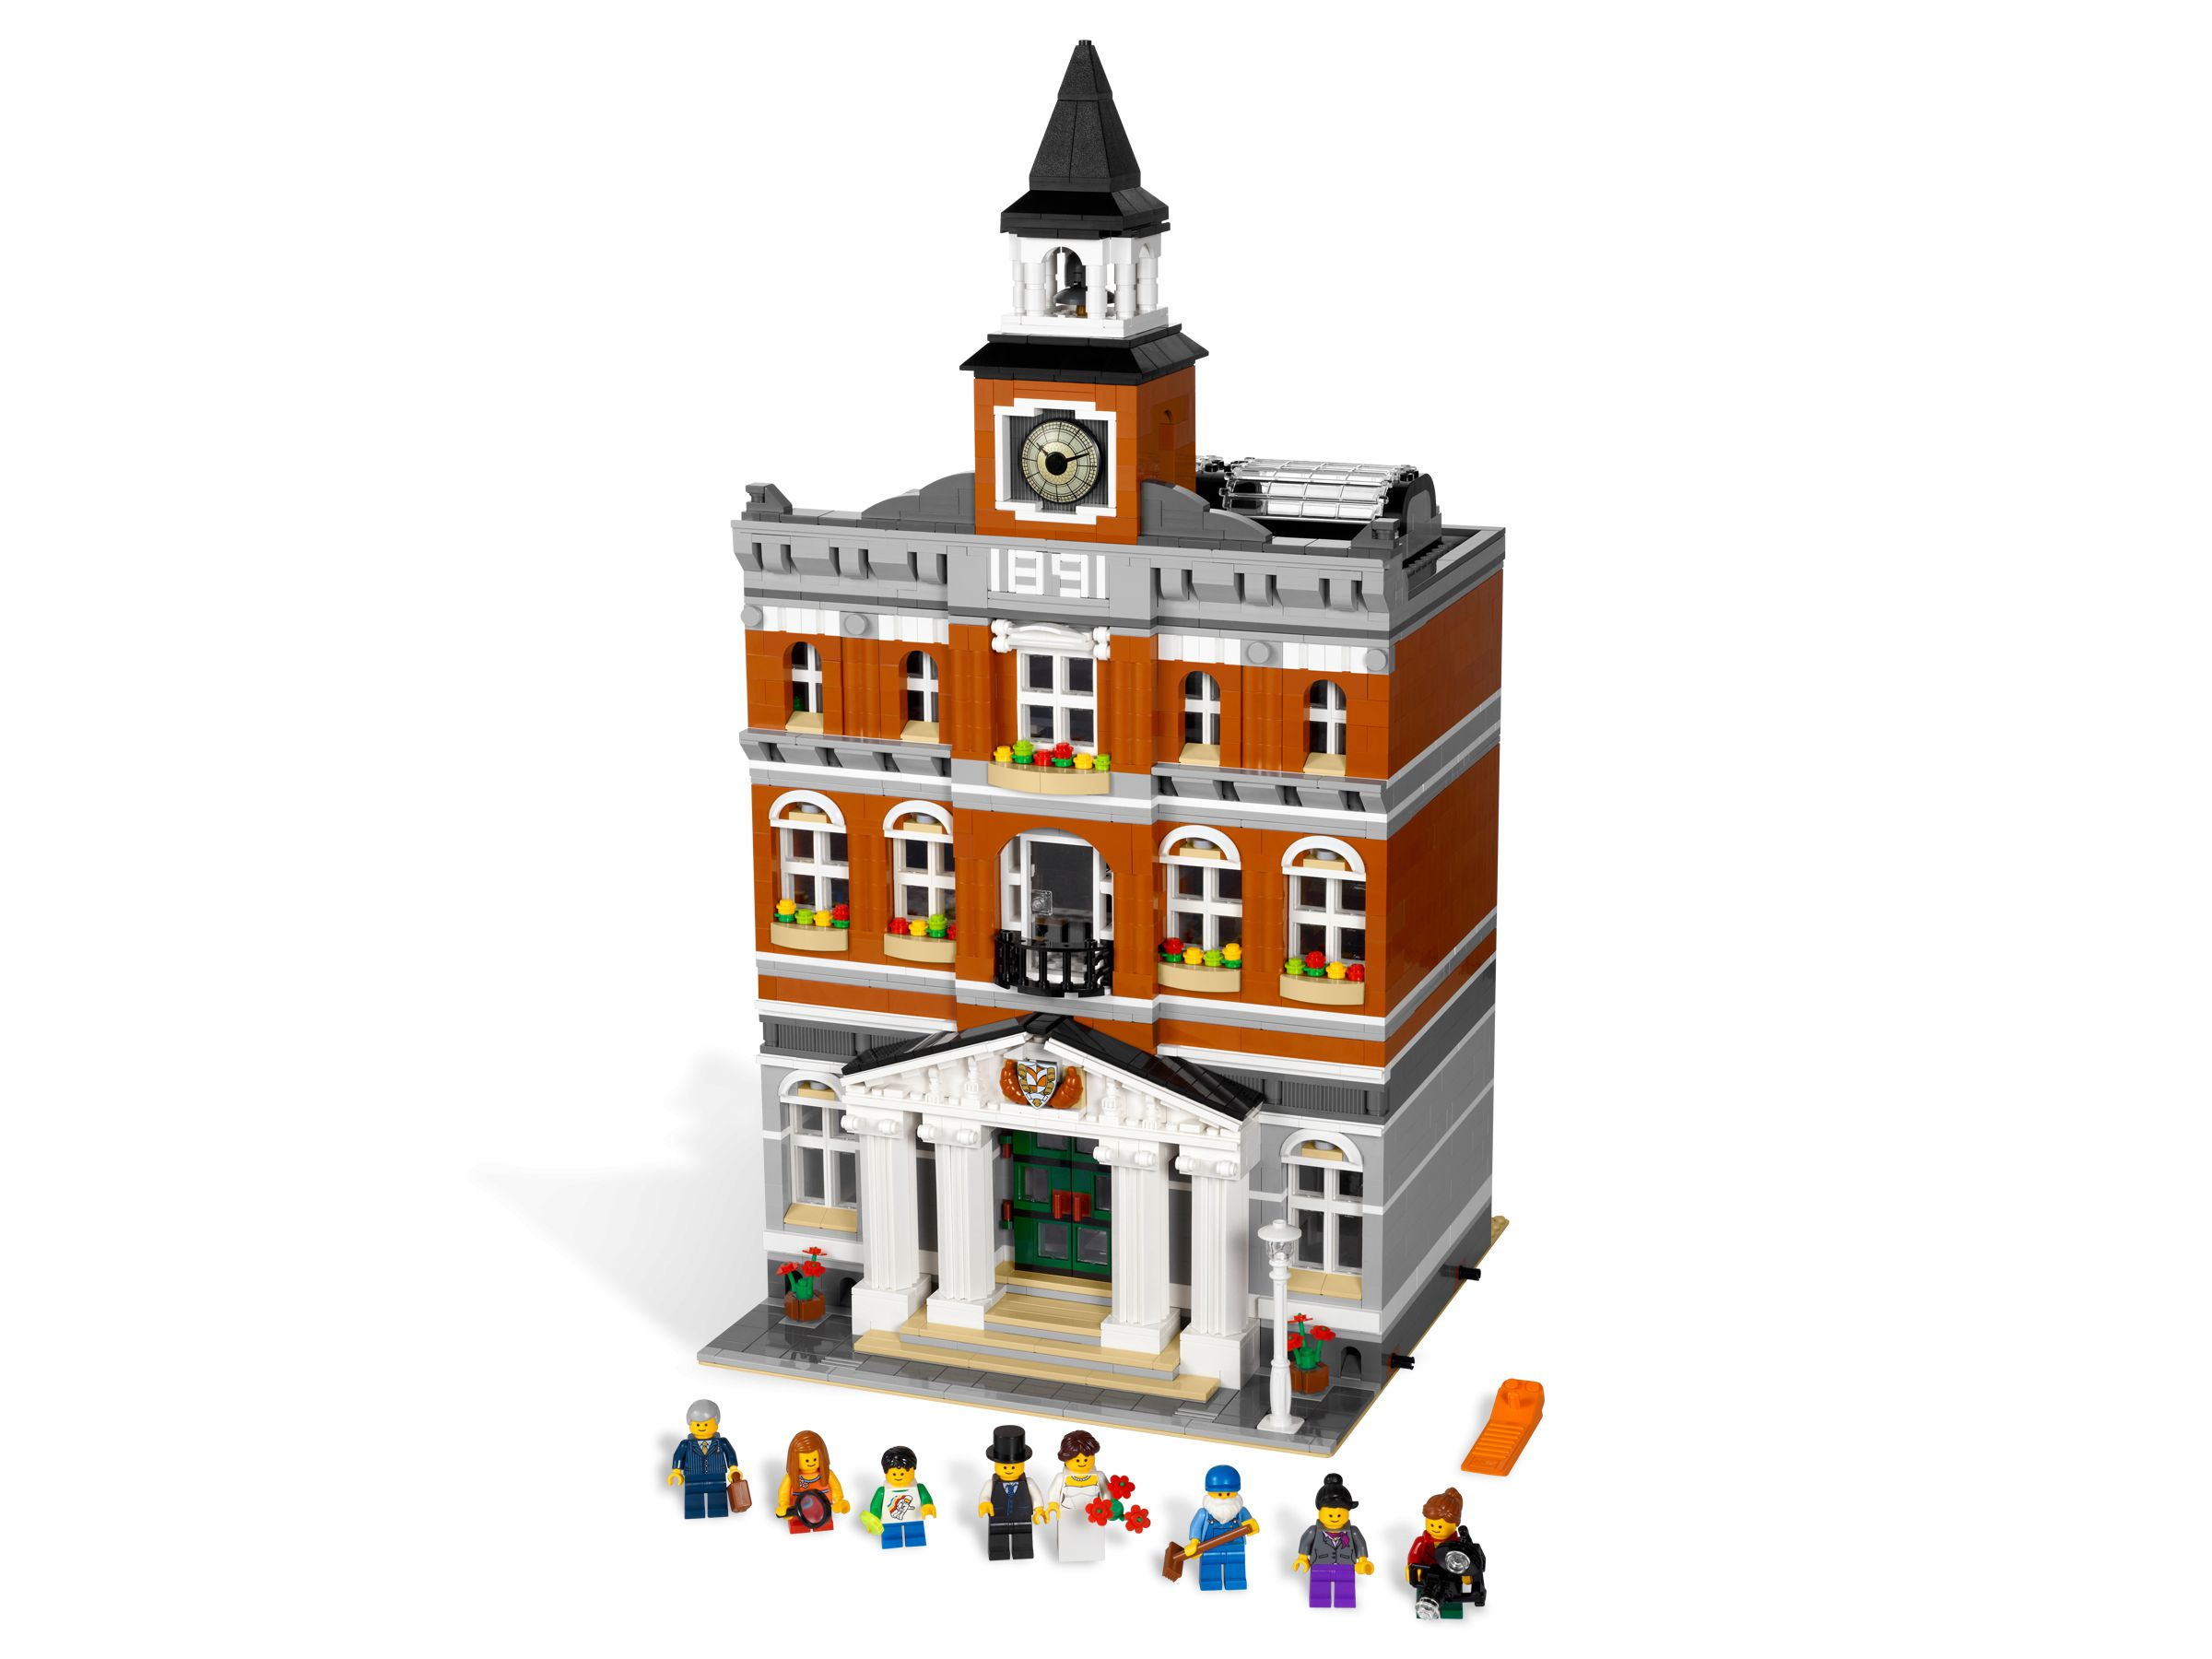 LEGO Advanced Models 10224 Rathaus LEGO_10224.jpg